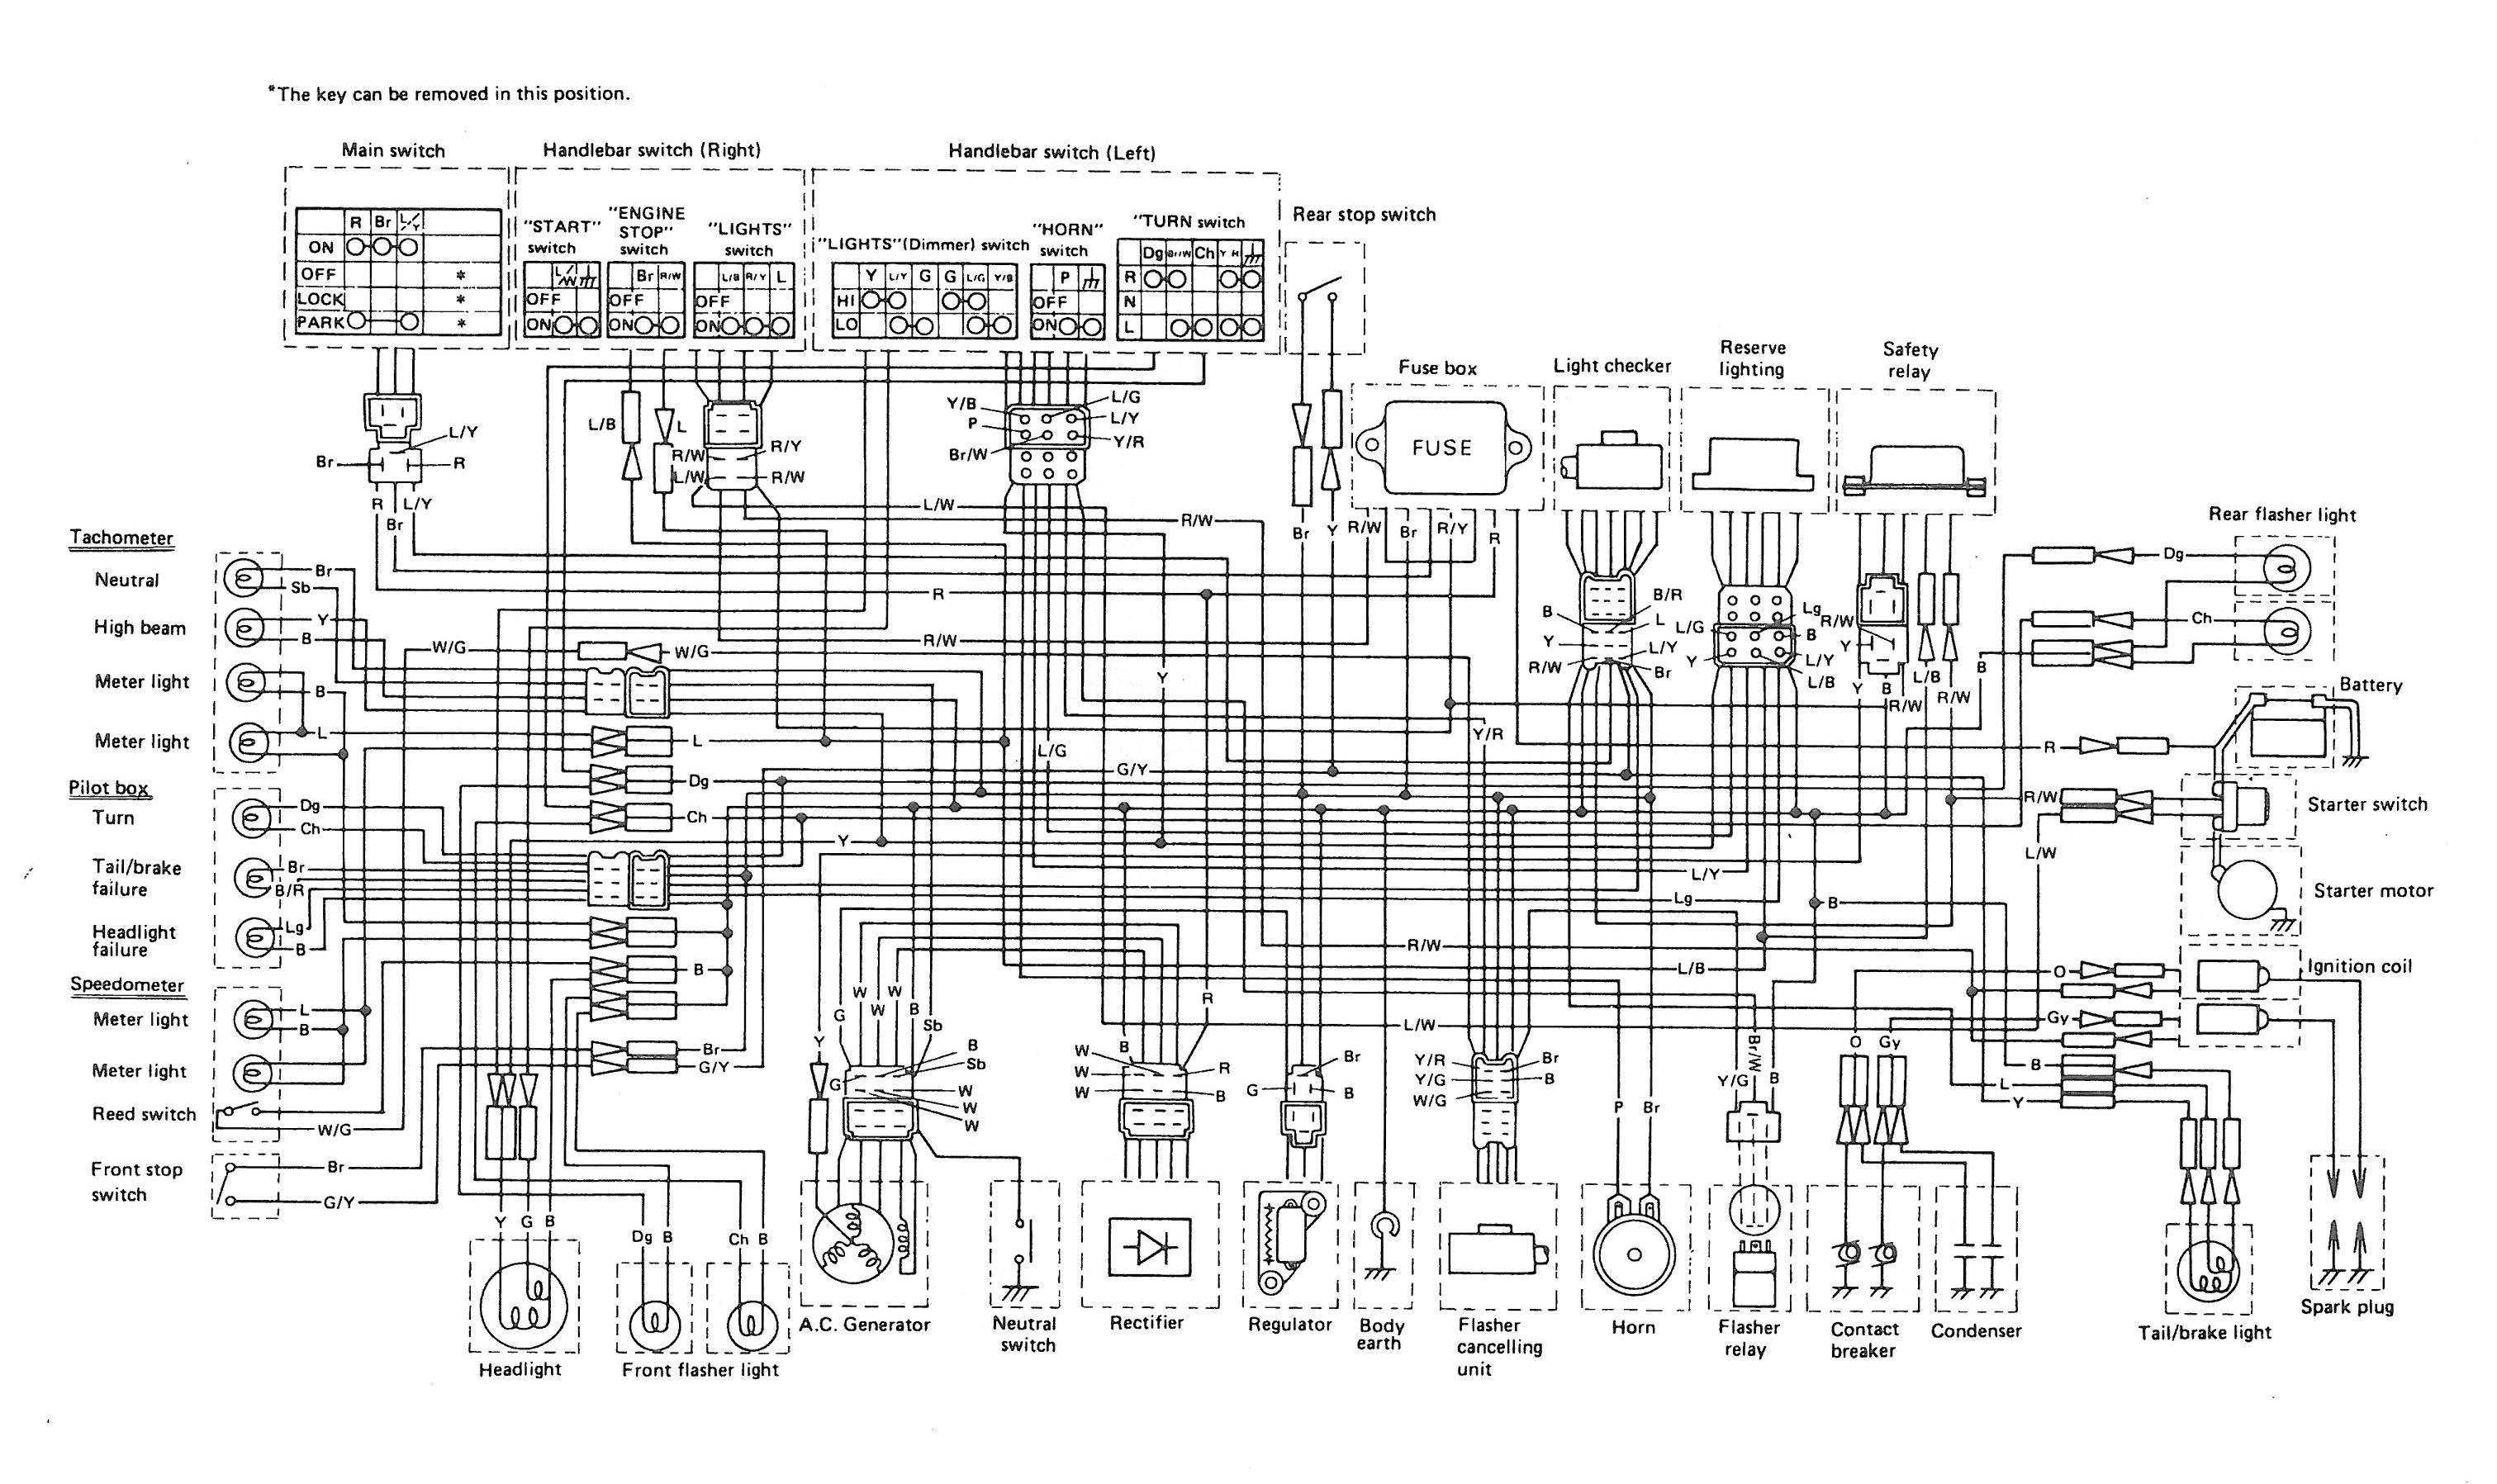 78 xsse wiring 6 1 1978 thexscafe yamaha xs 400 wiring diagram at reclaimingppi.co